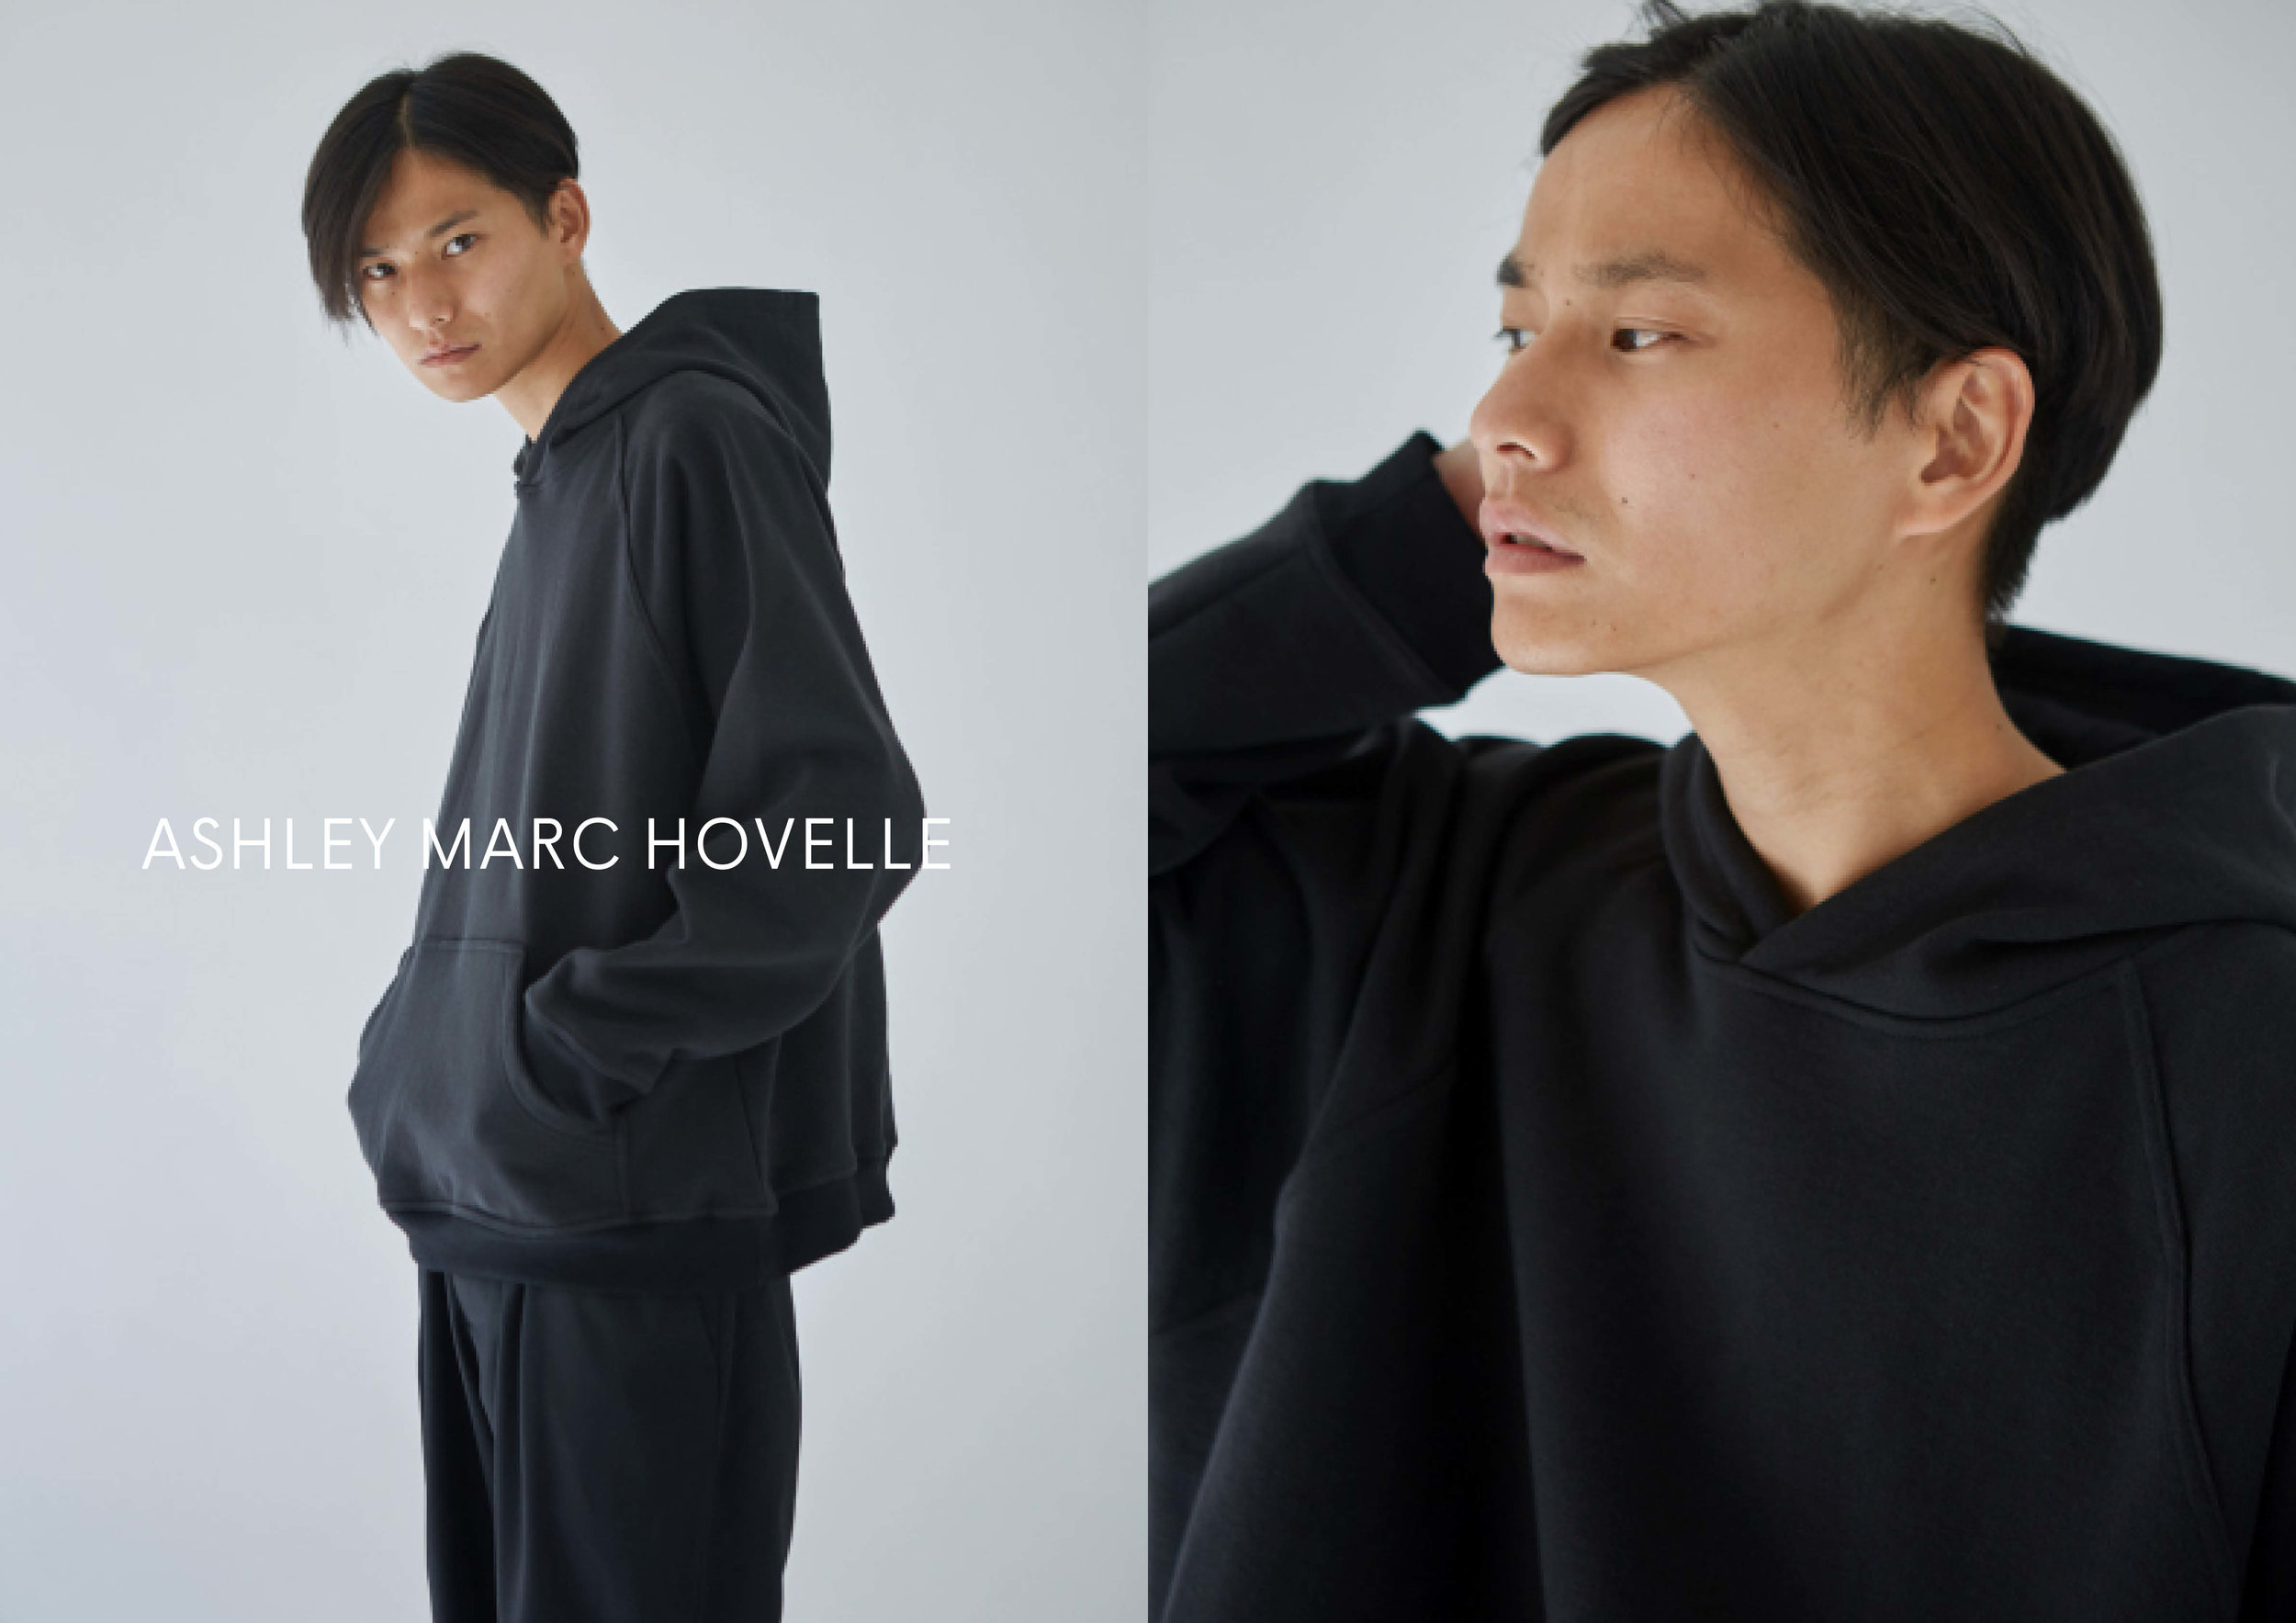 Ashley Marc Hovelle SS19 Lookbook final sml33.jpg